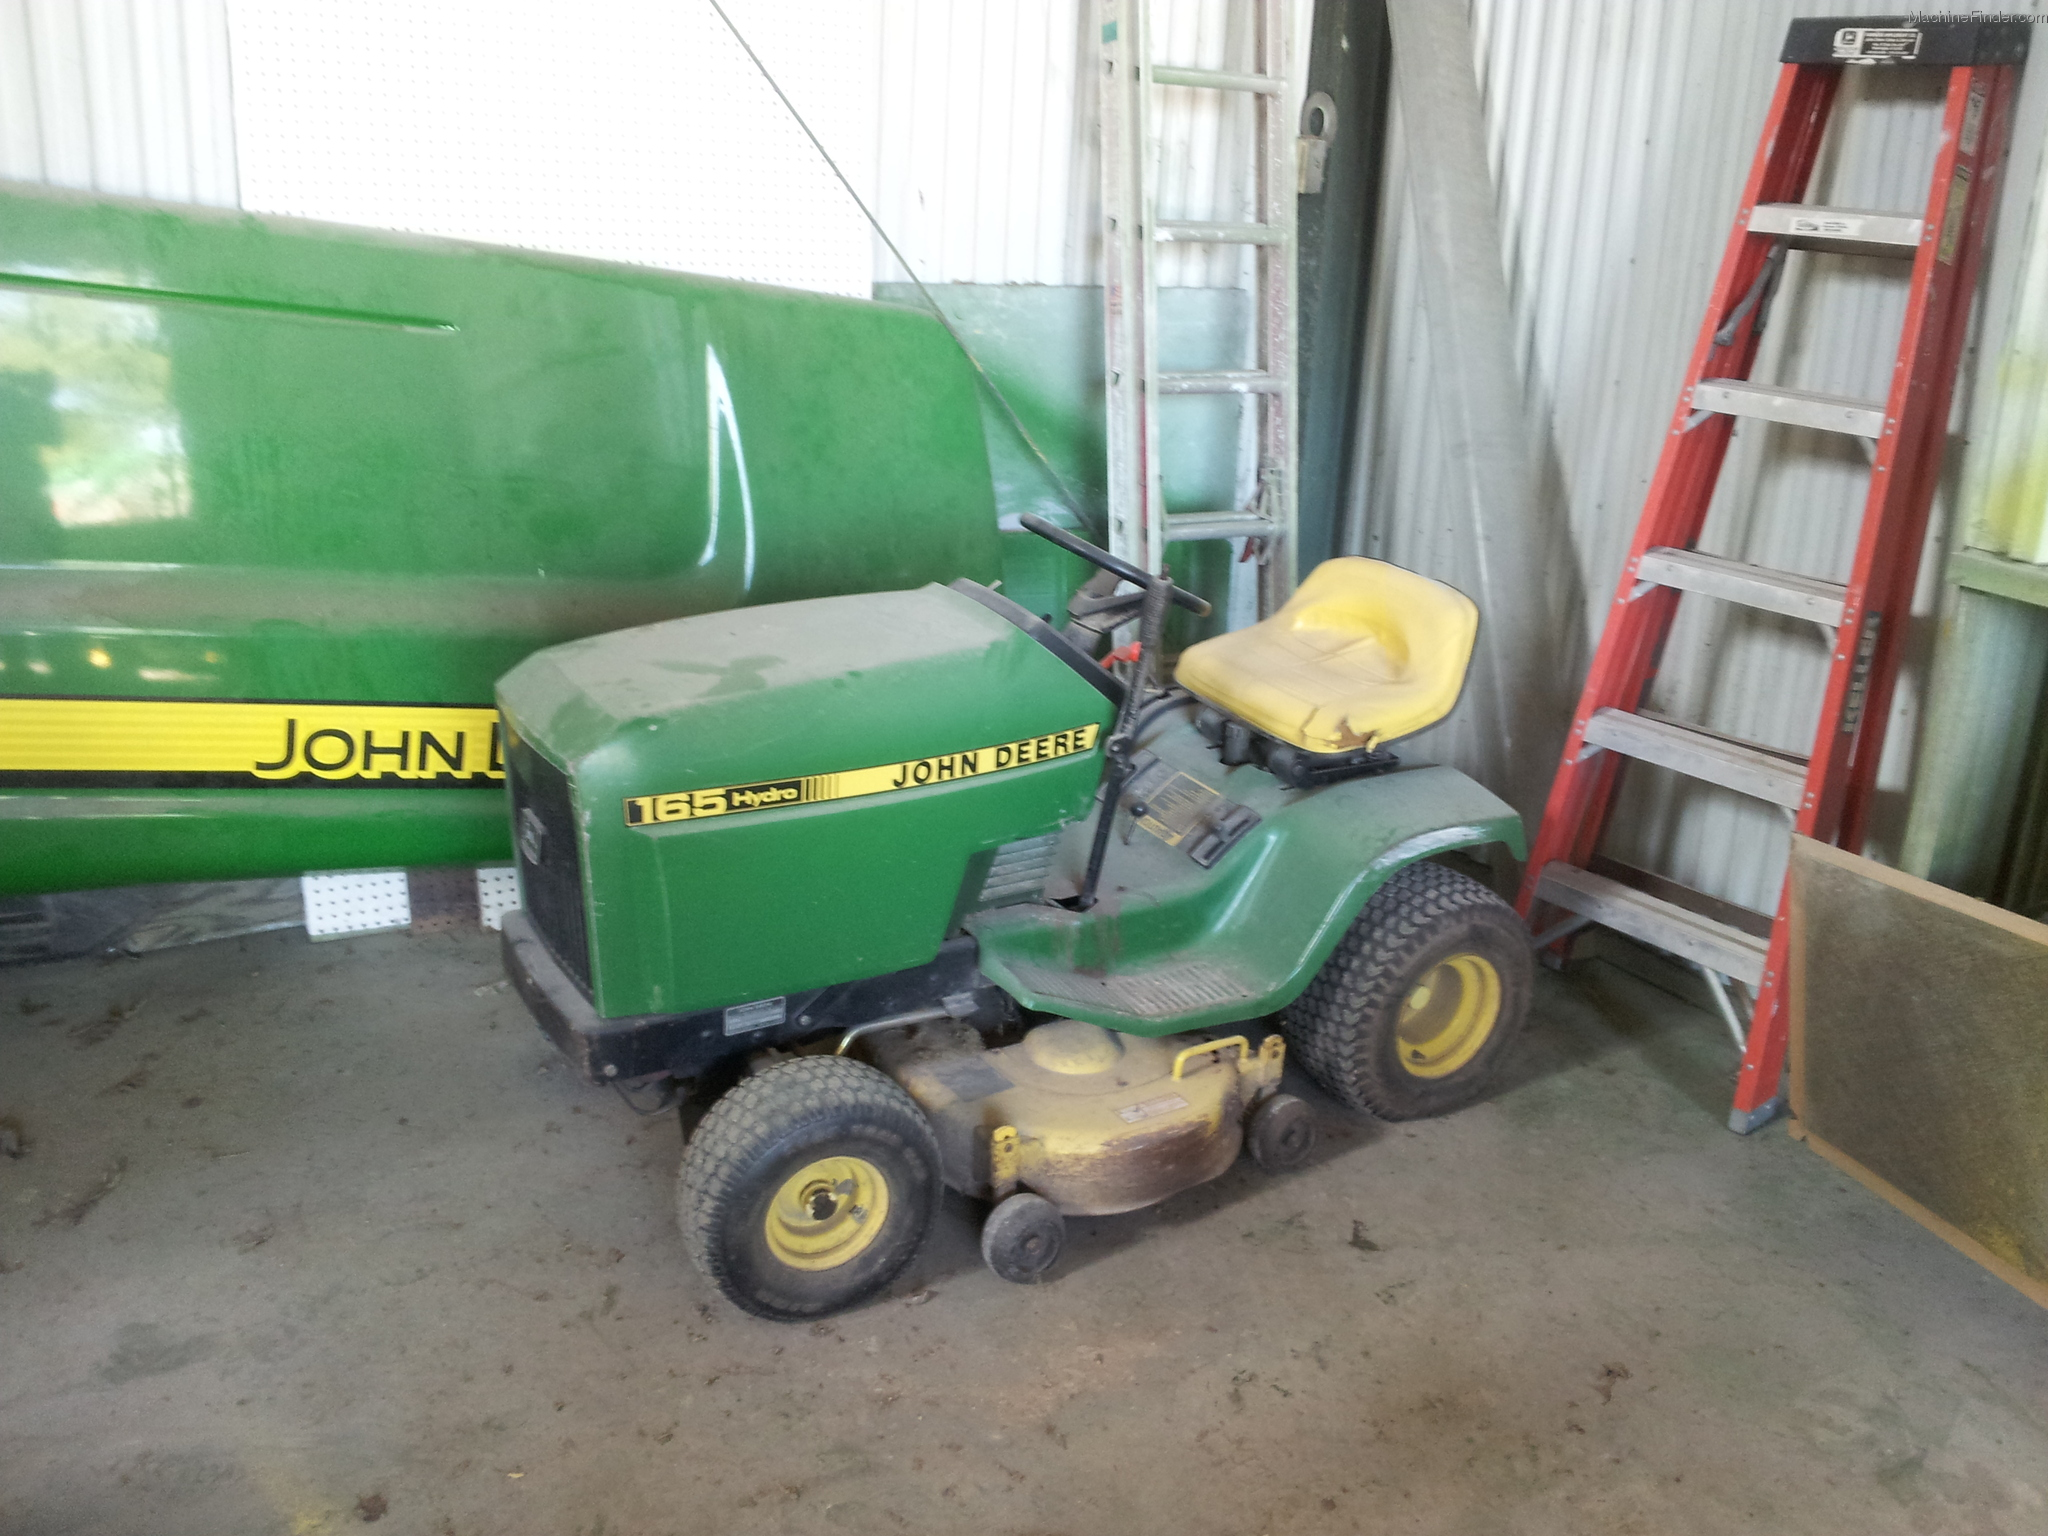 John Deere Hydro 165 Manual http://www.machinefinder.com/ww/en-US/machine/2147478